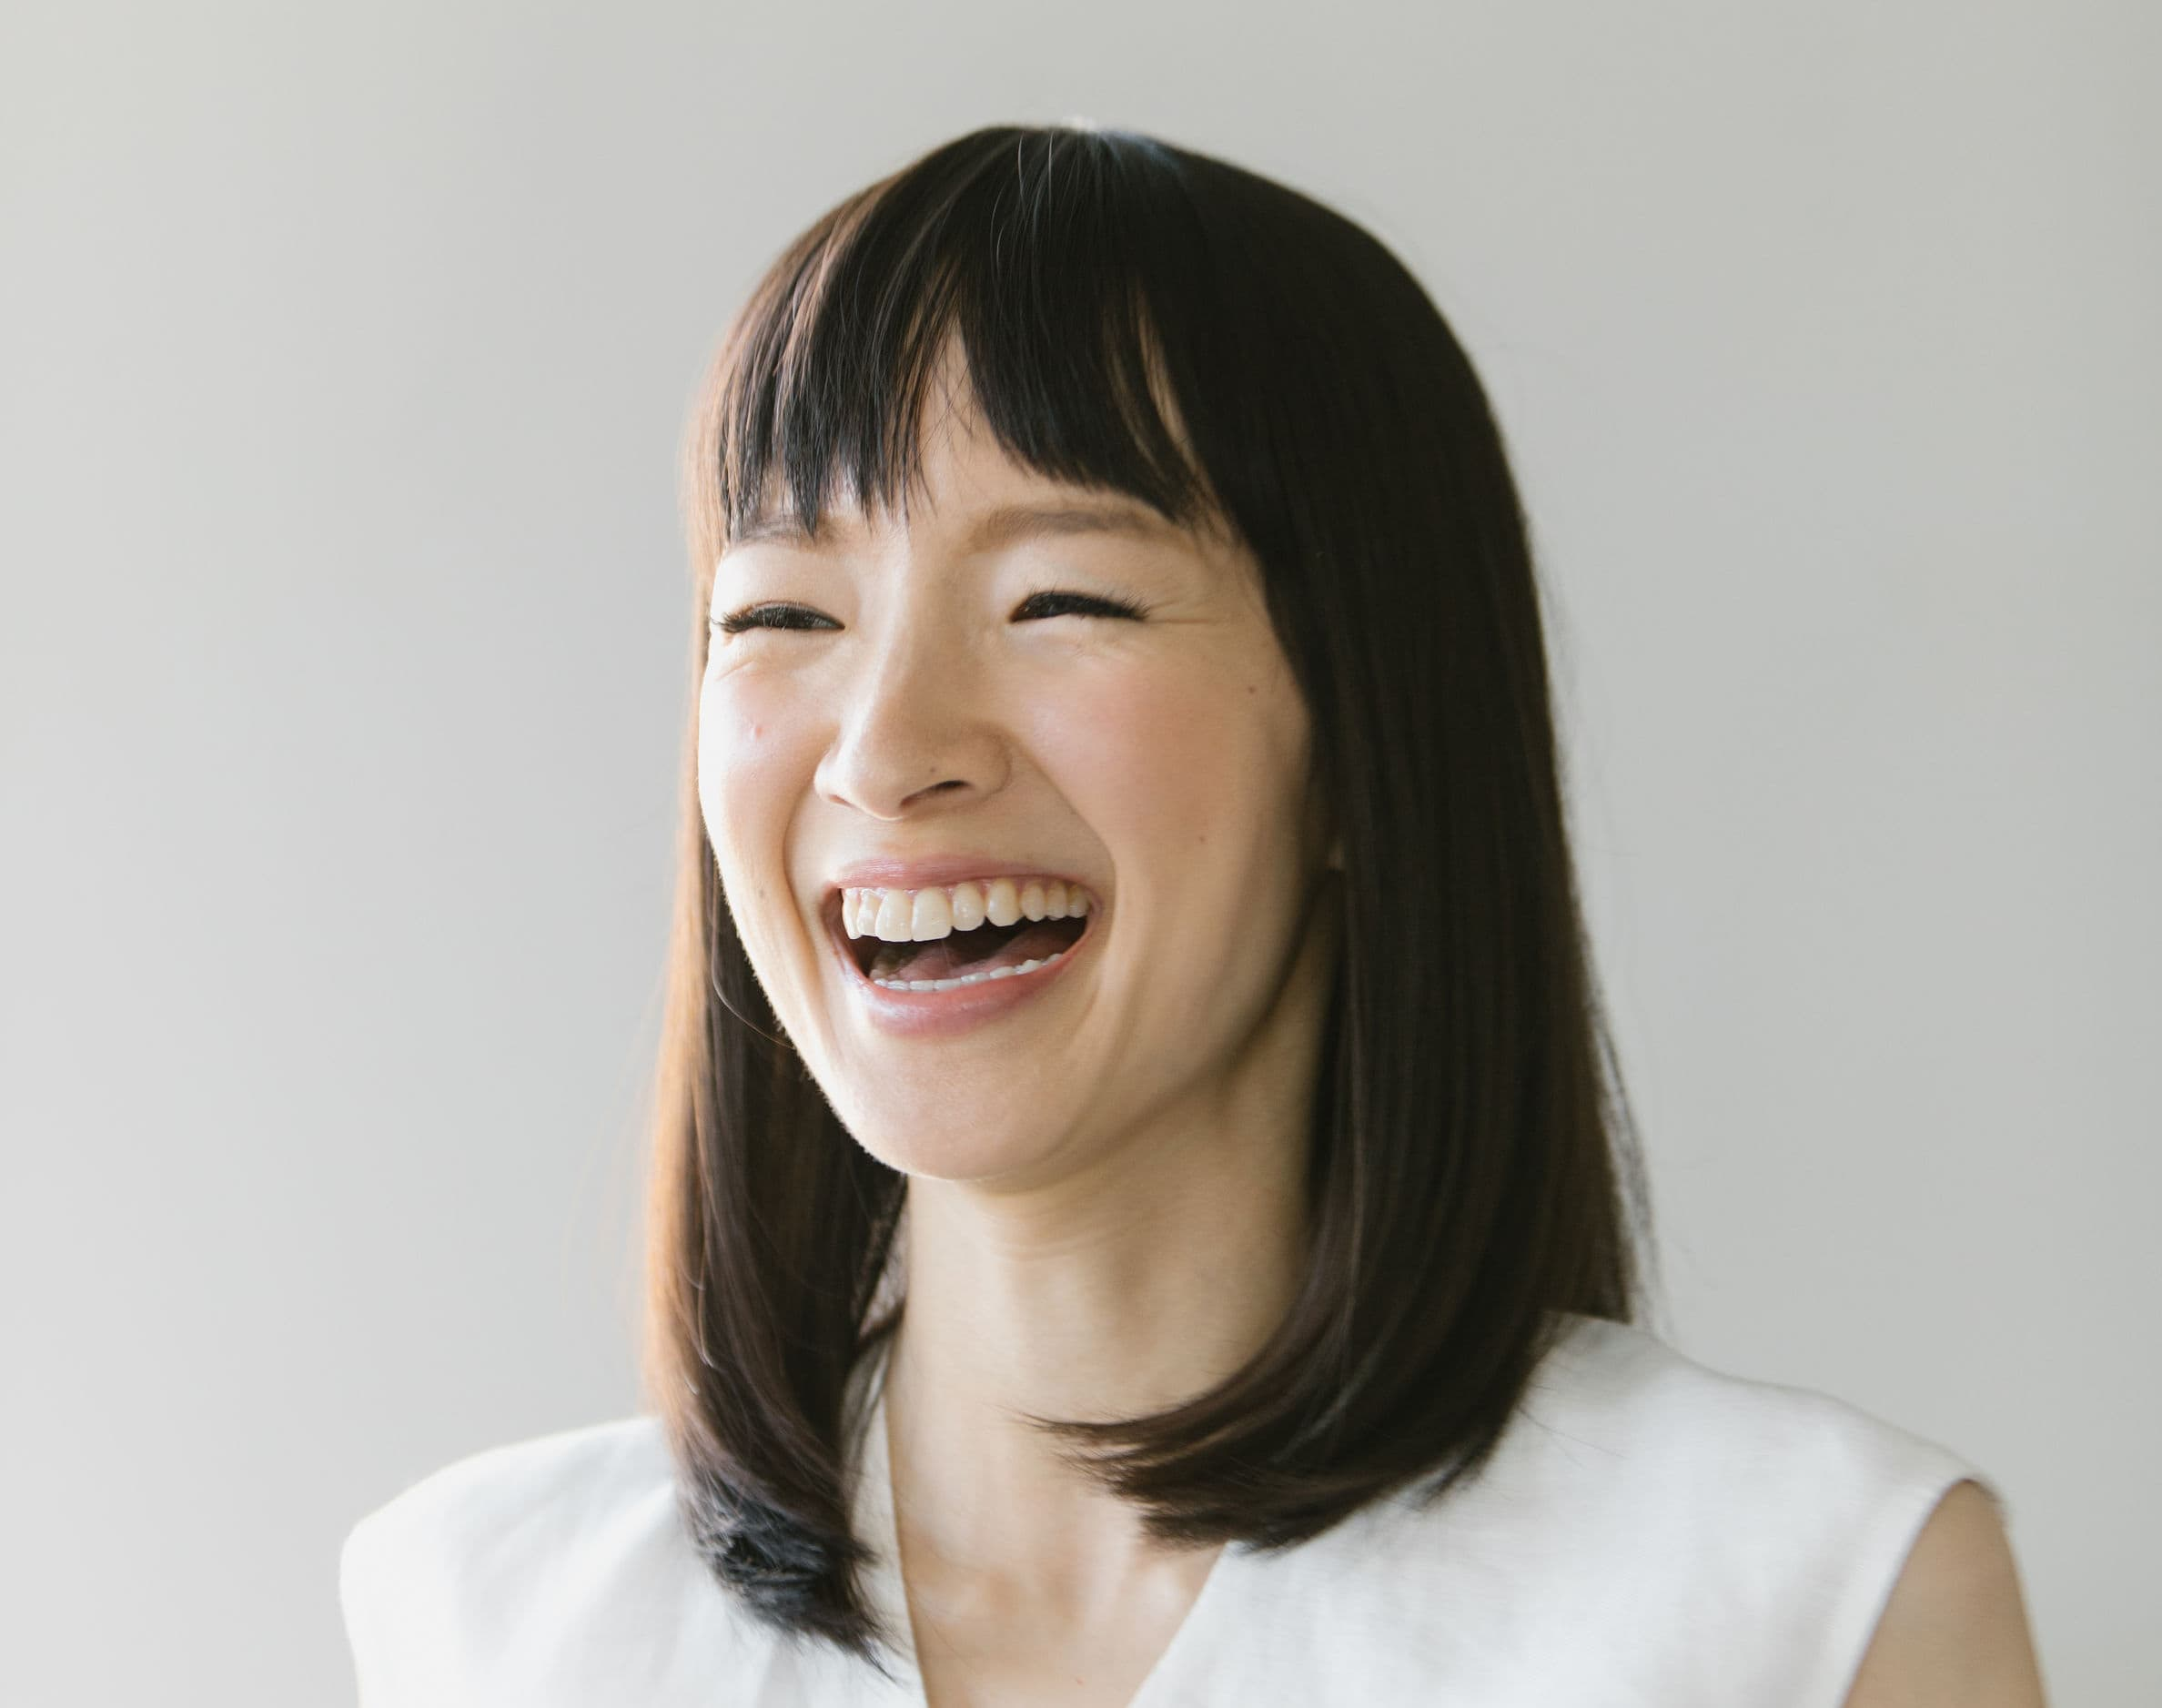 Marie Kondo Shares Her Top 5 Self-Care Practices